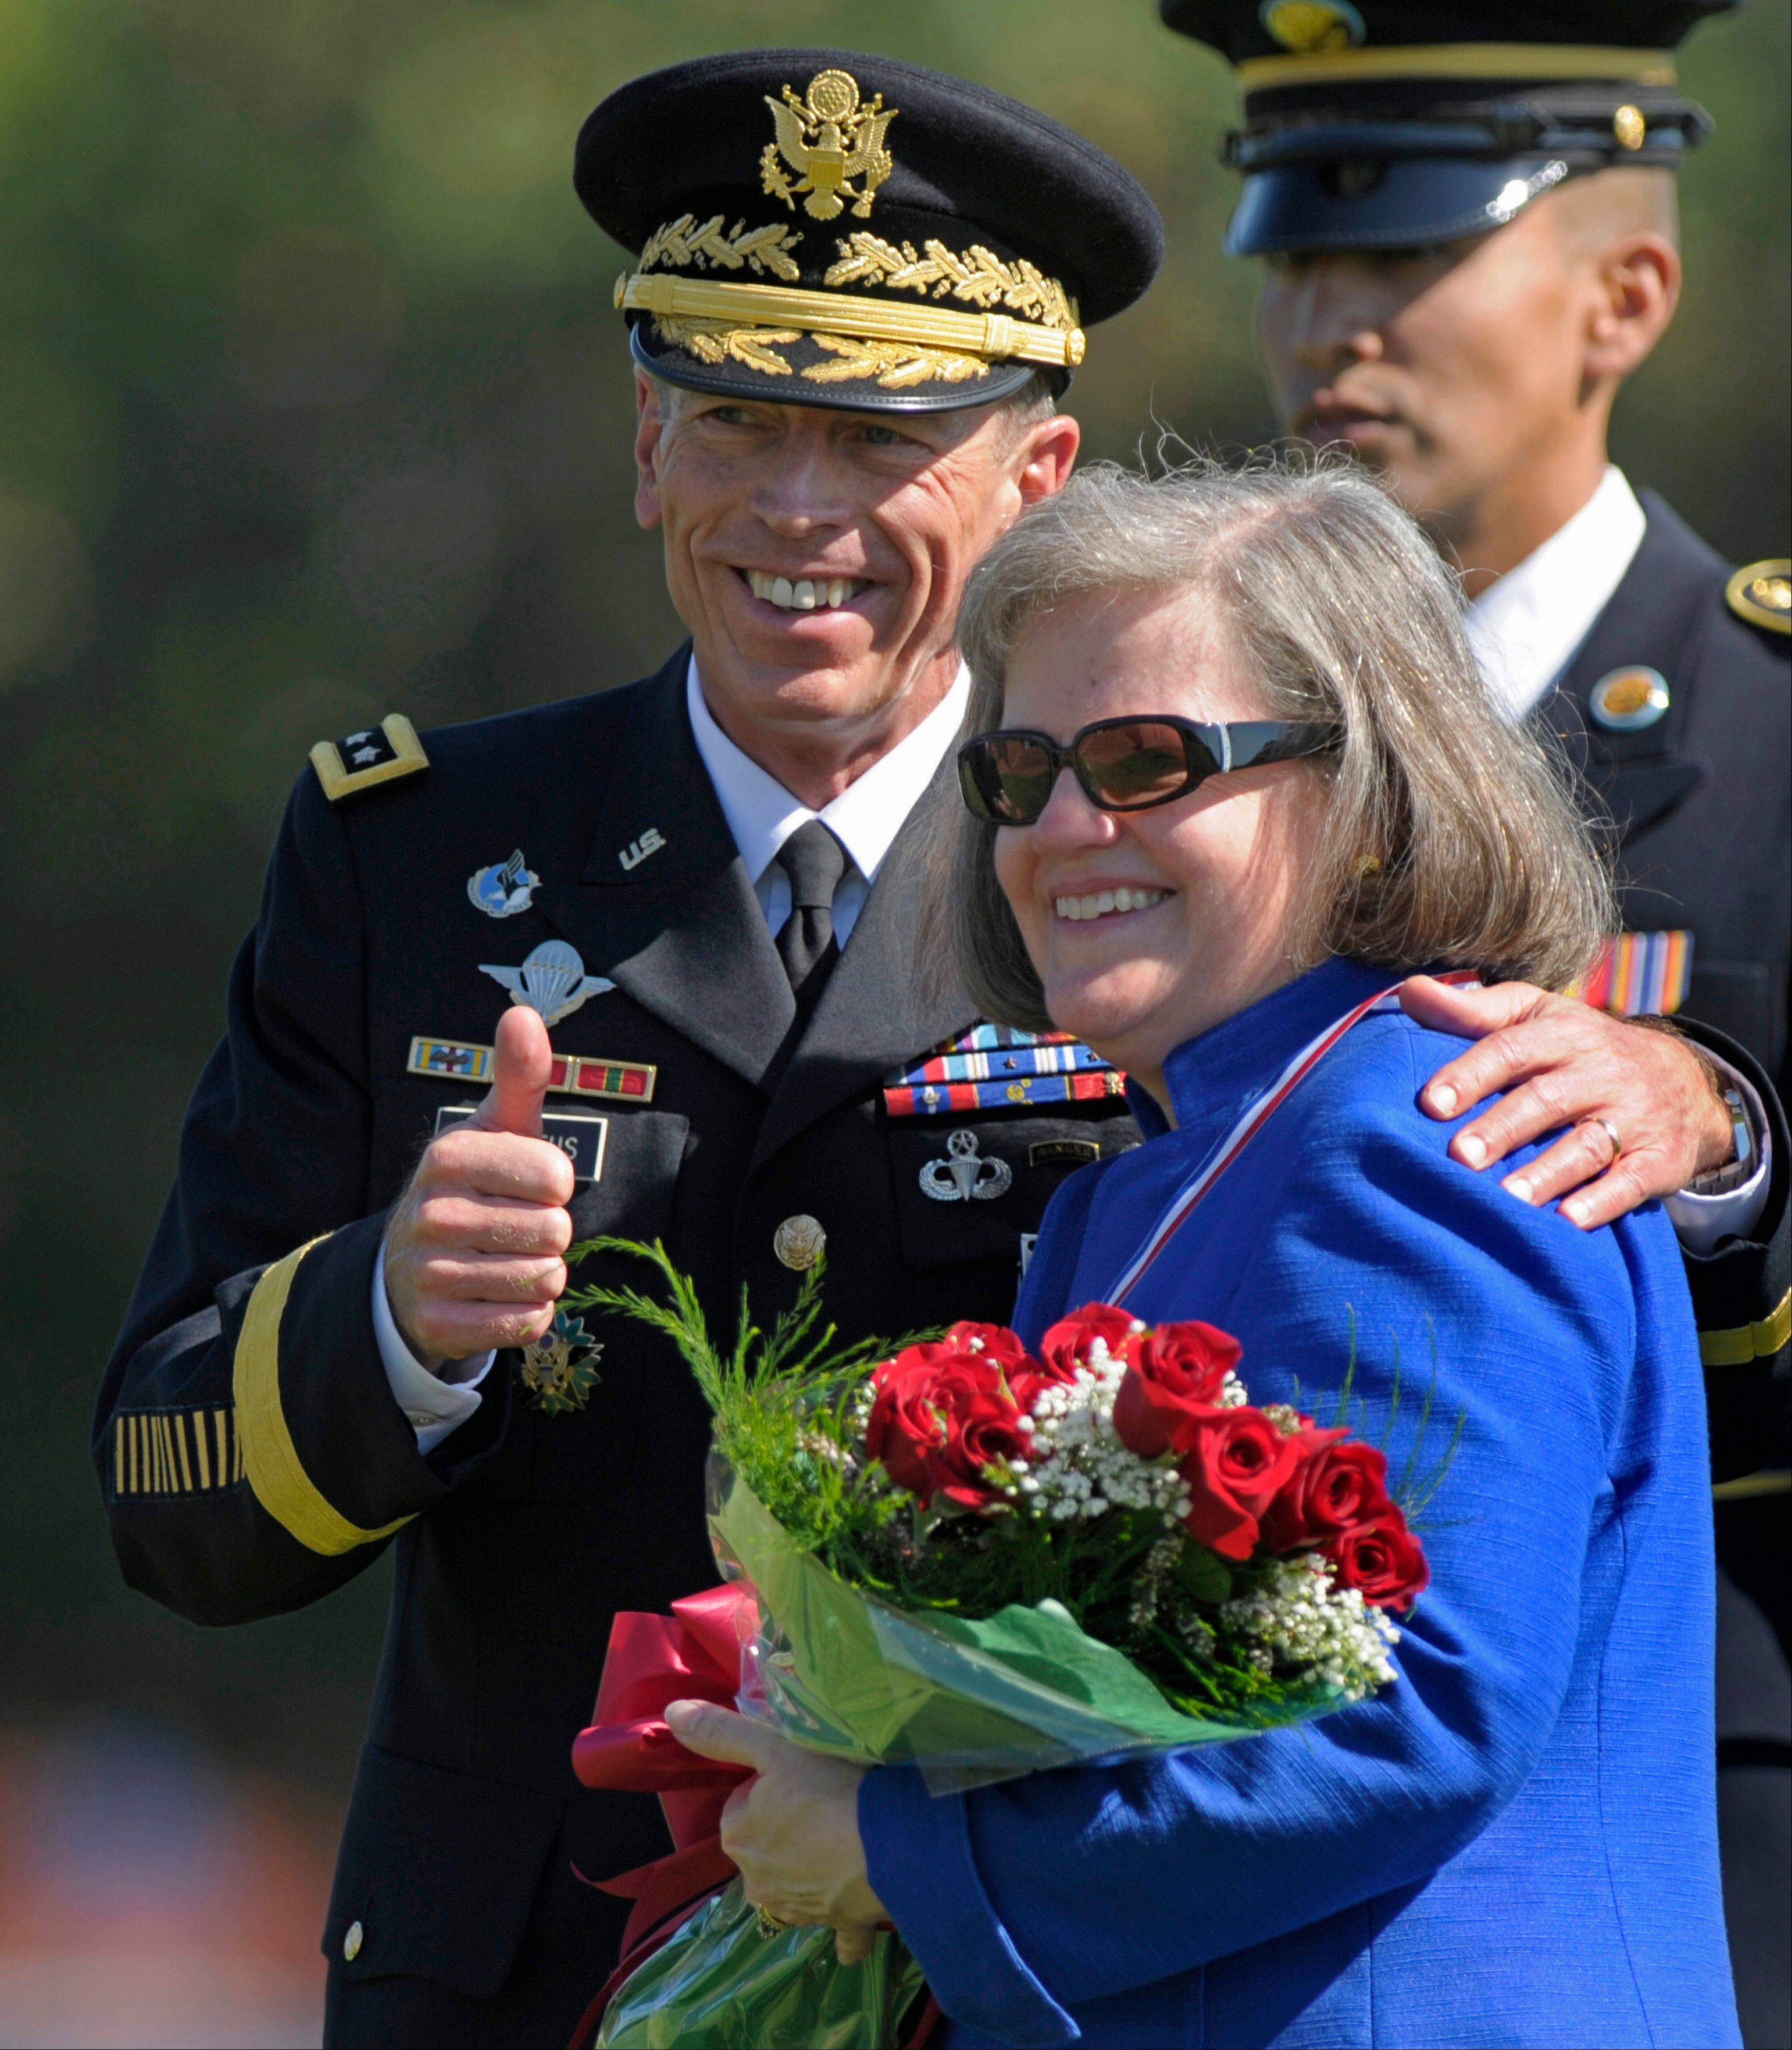 Former Commander of International Security Assistance Force and U.S. Forces-Afghanistan Gen. Davis Petraeus, standing with his wife Holly, participates in an armed forces farewell tribute and retirement ceremony at Joint Base Myer-Henderson Hall in Arlington, Va.